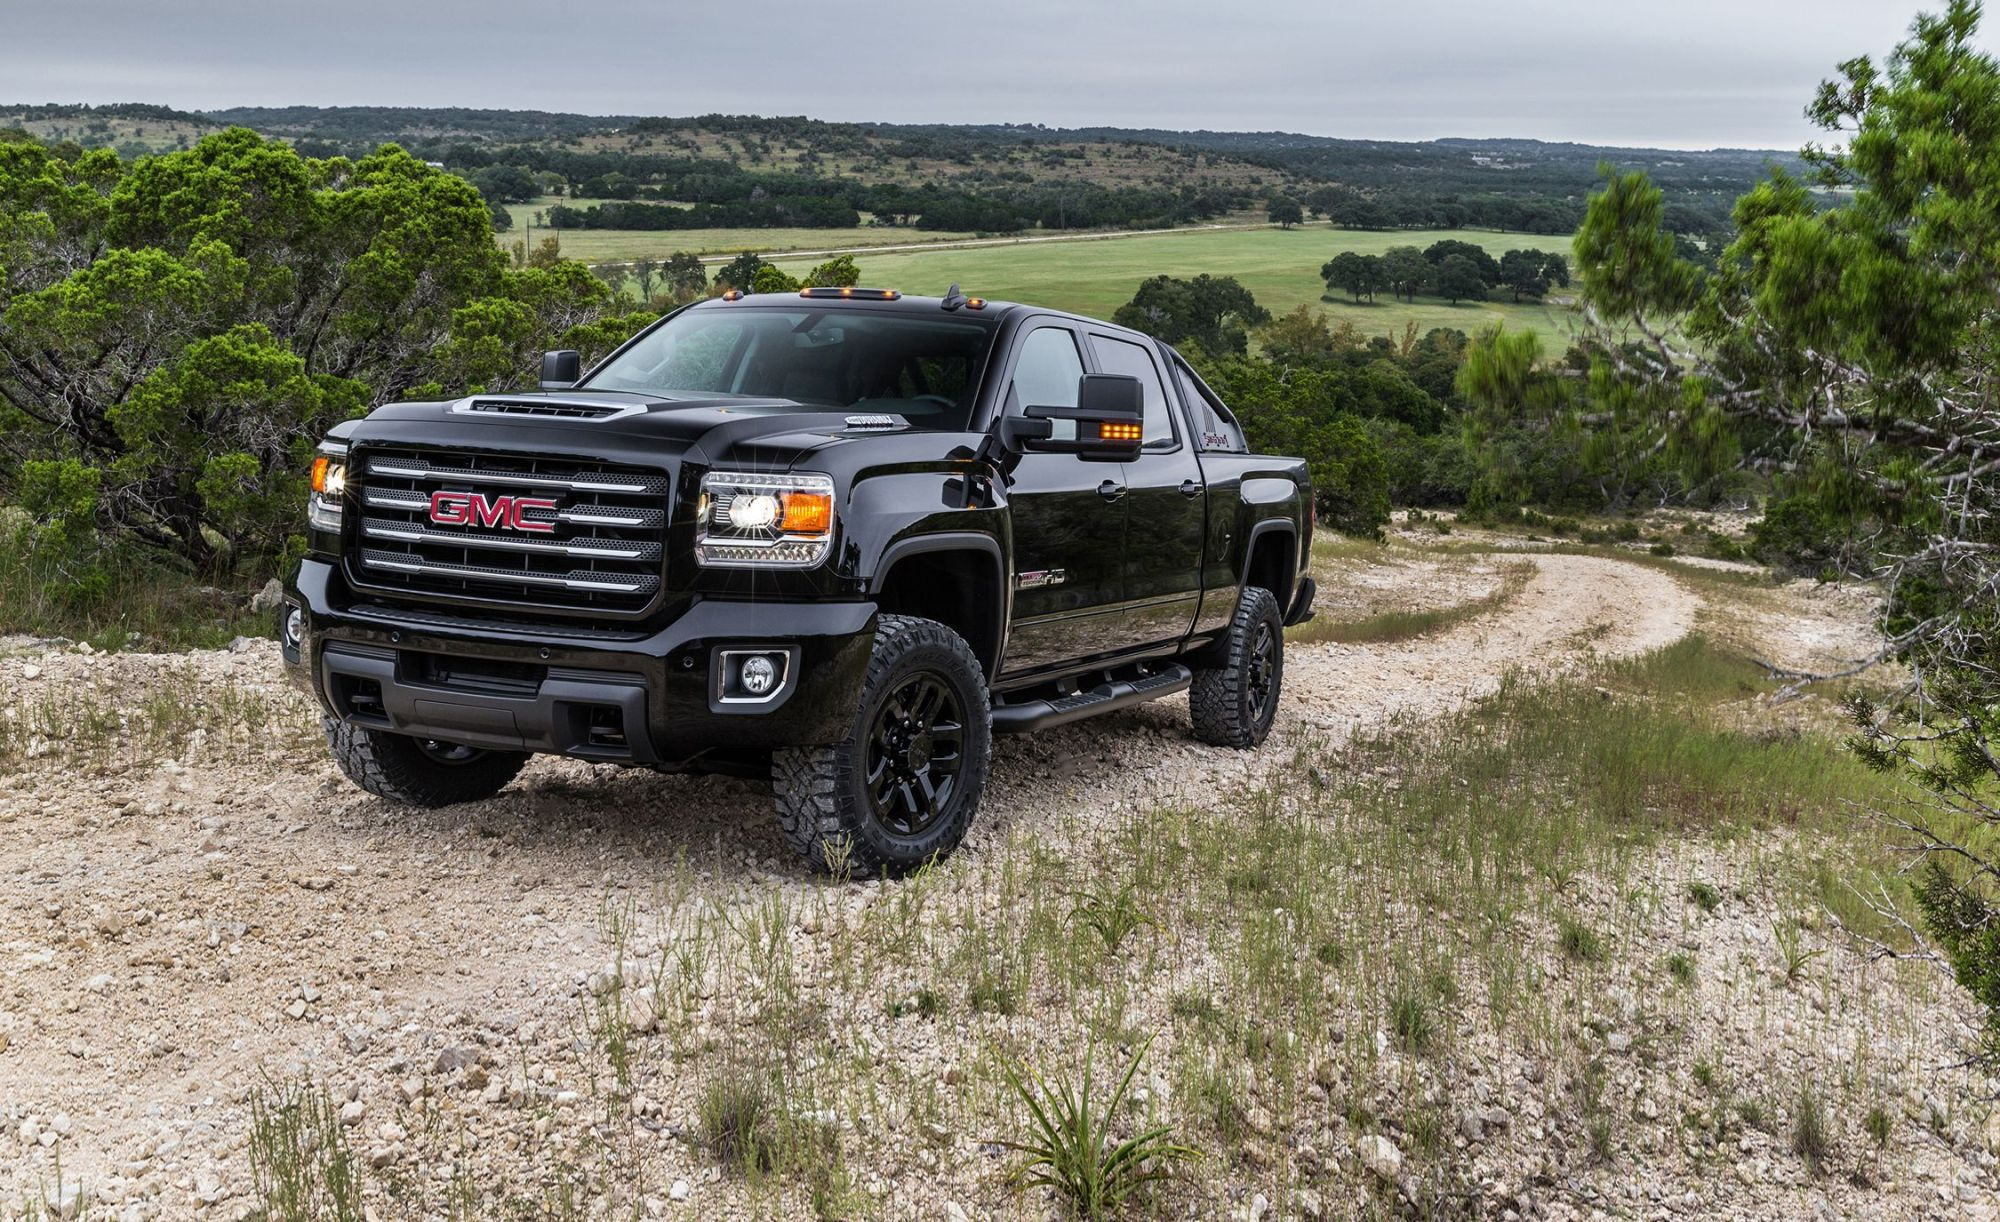 hight resolution of gmc sierra 2500hd reviews gmc sierra 2500hd price photos and specs car and driver